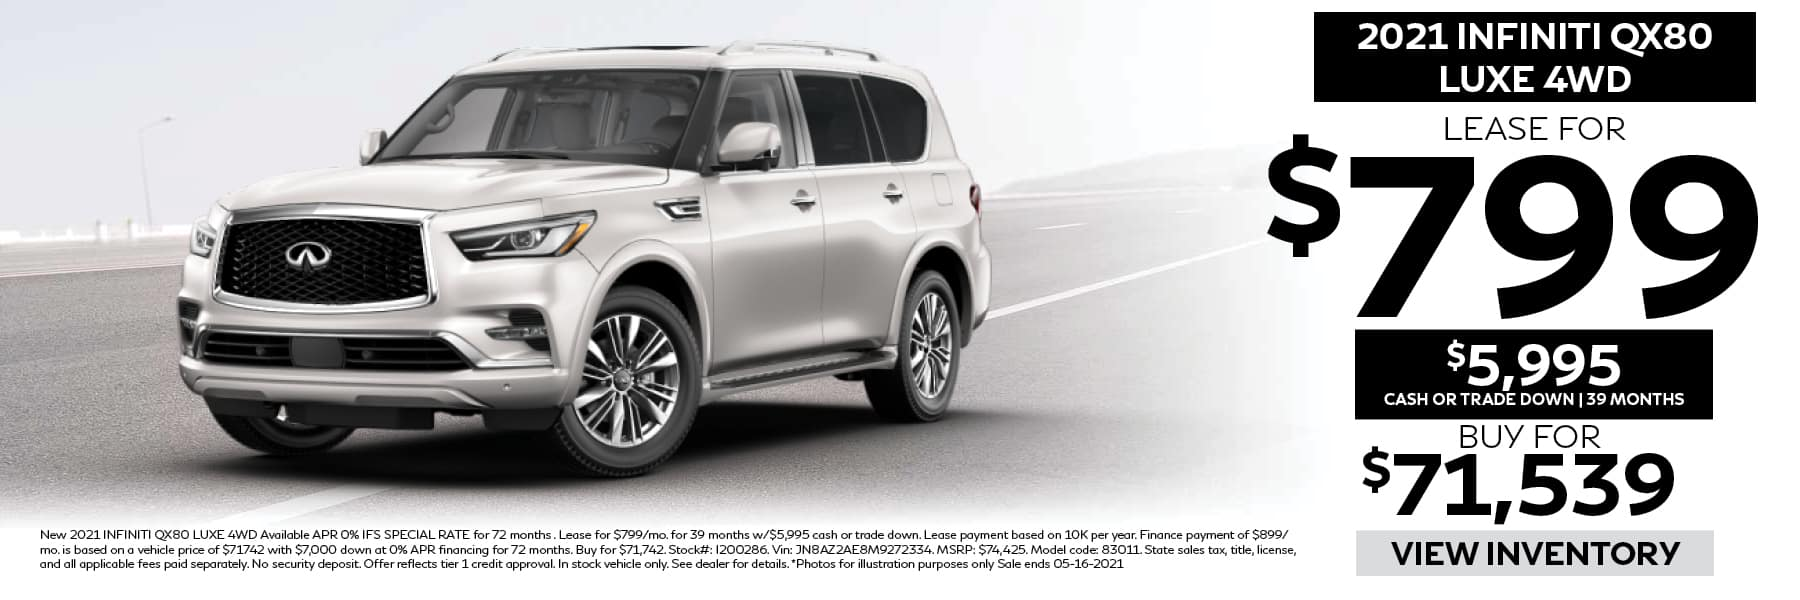 revised_QX80